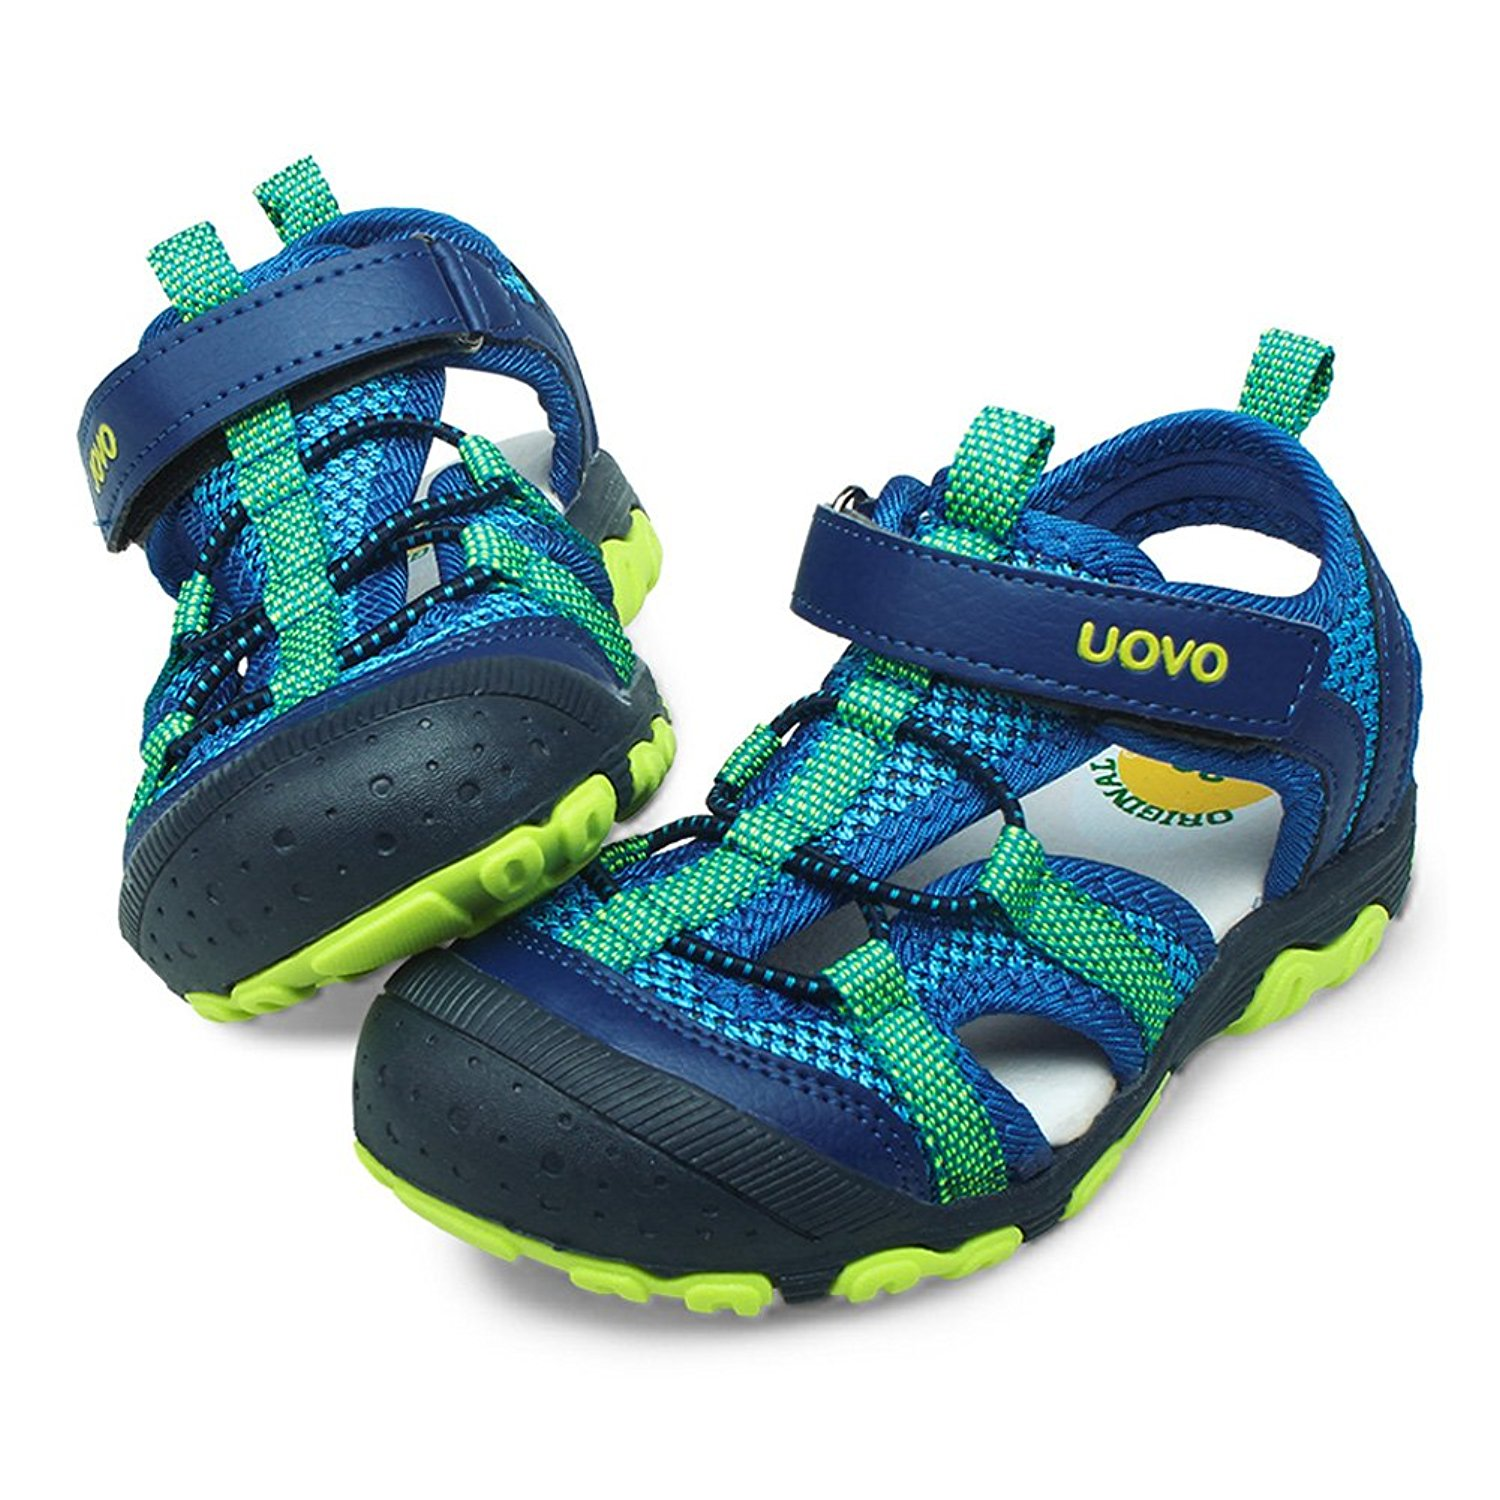 225913bc941 Get Quotations · UOVO Boys Sandals Hiking Athletic Closed-Toe Beach Sandals  Kids Summer Shoes